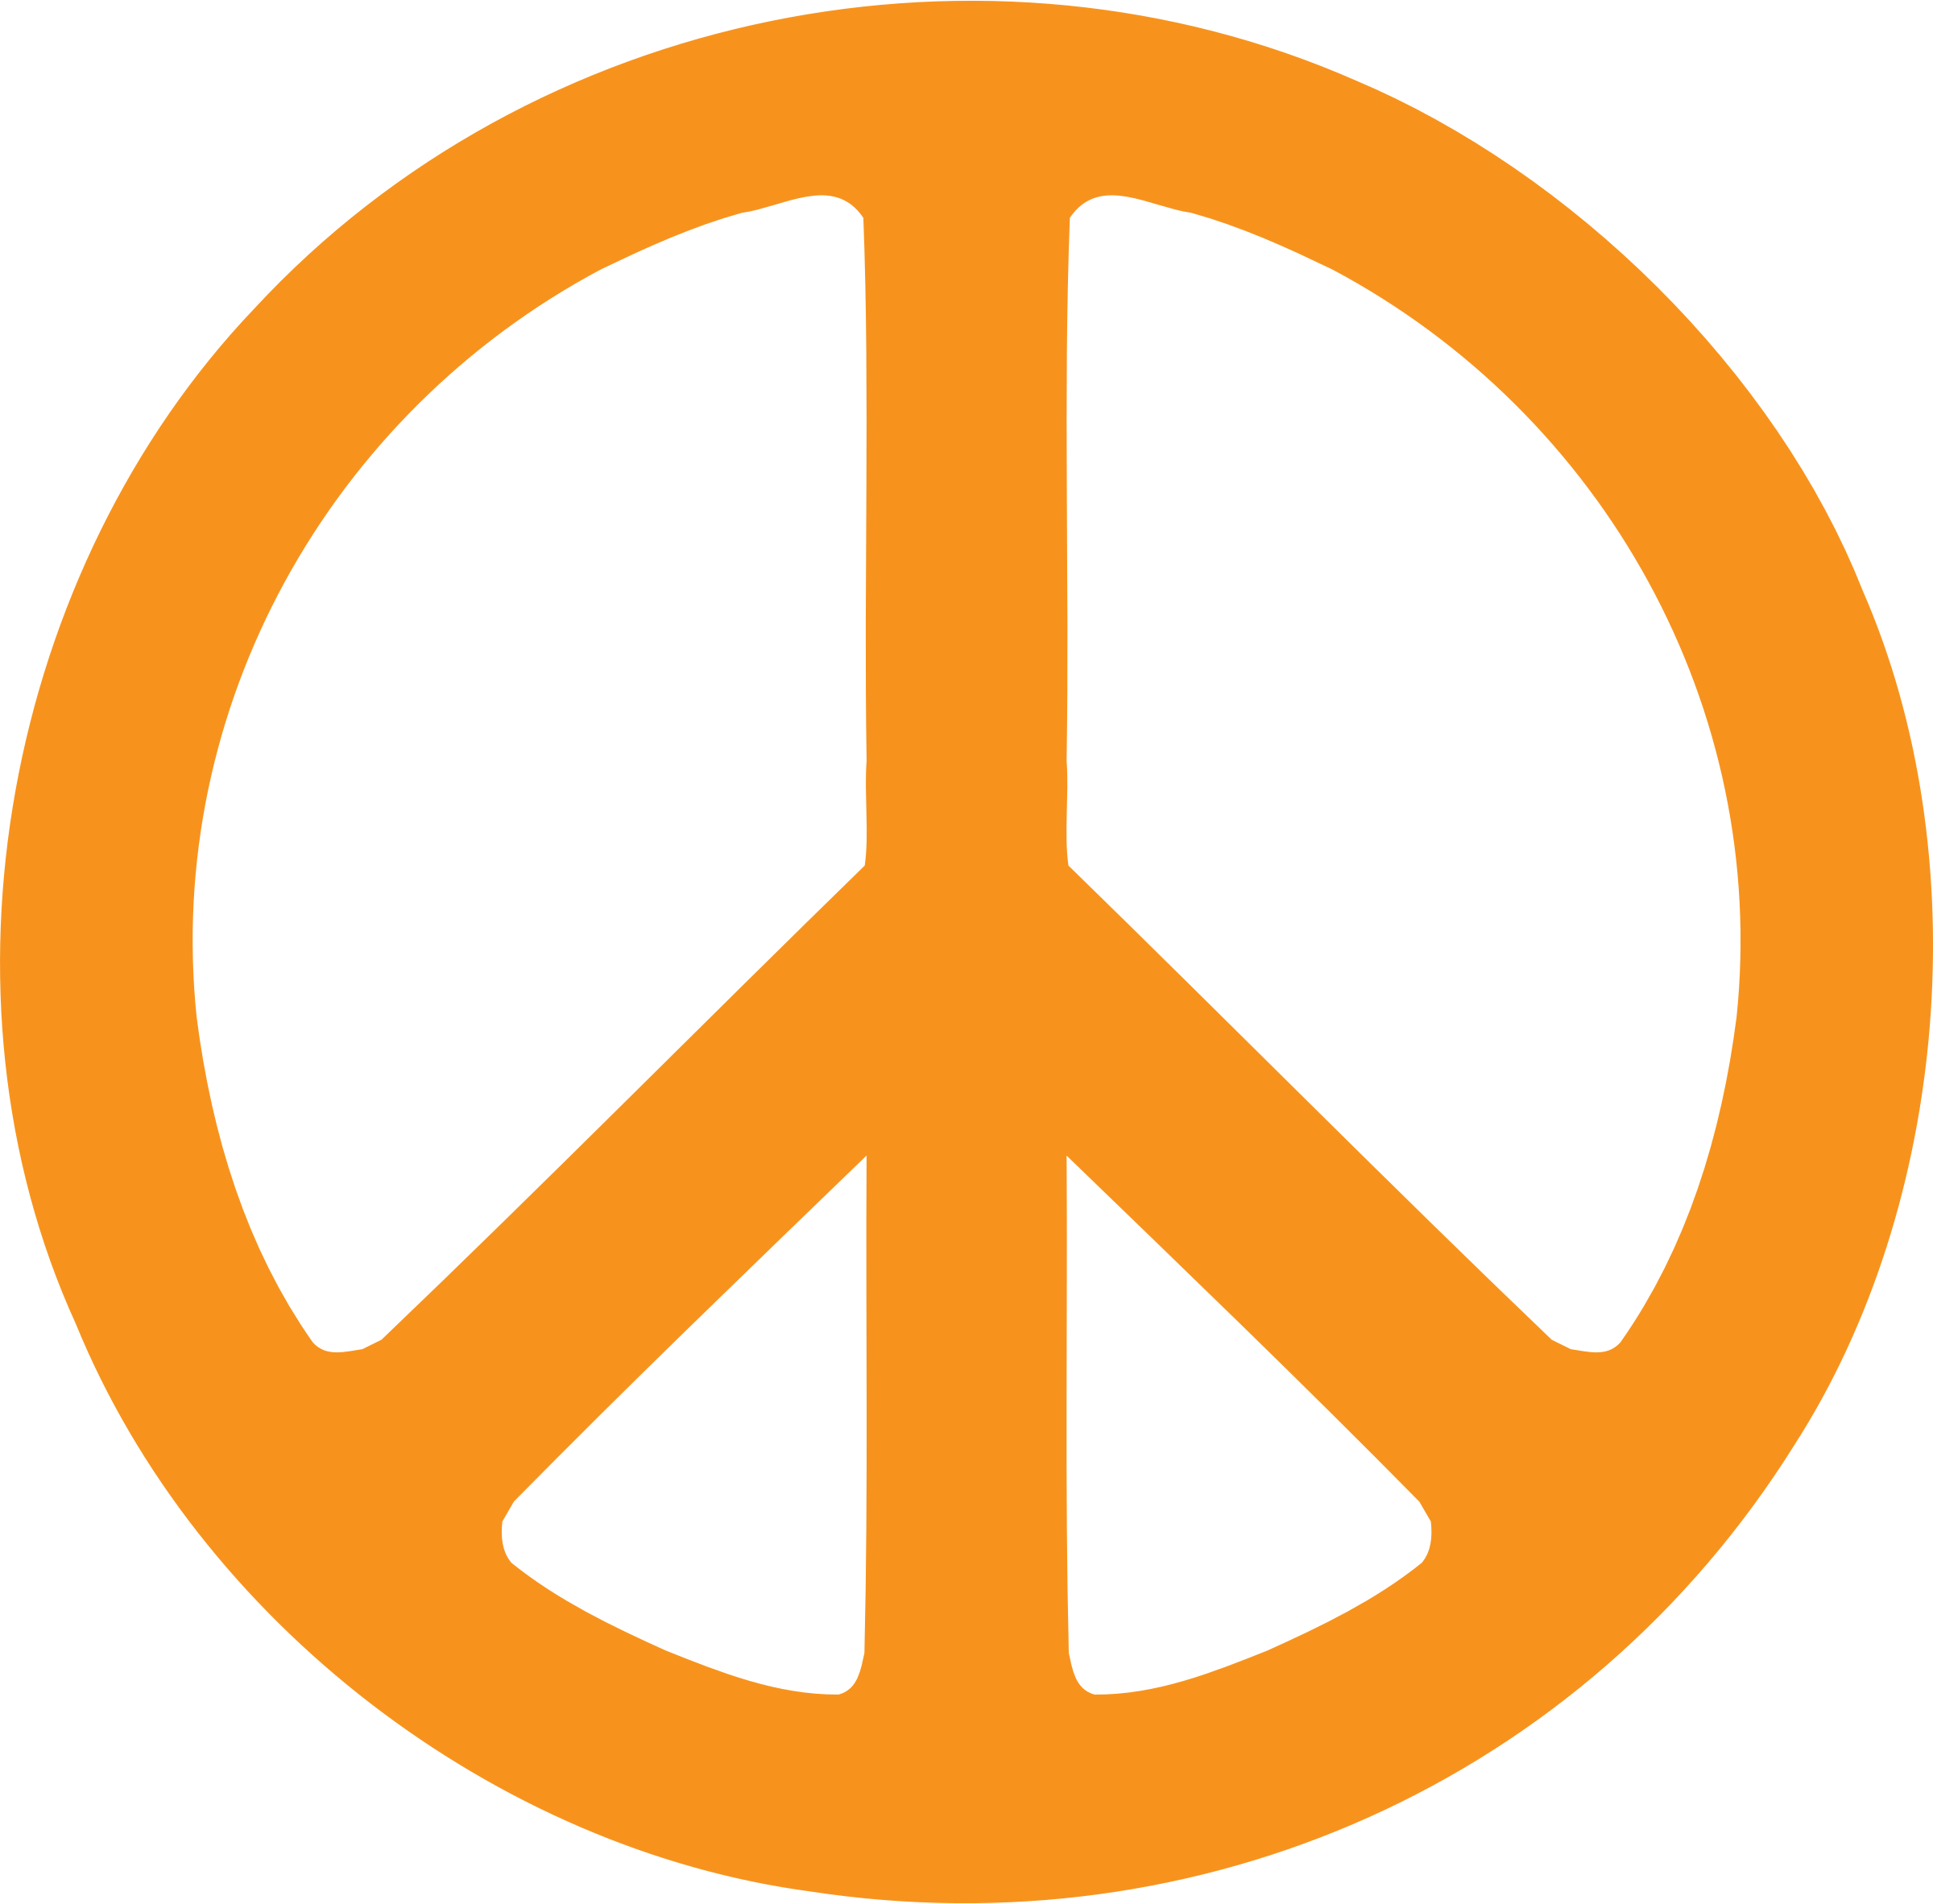 Valley vector peaceful. Peace symbol png transparent